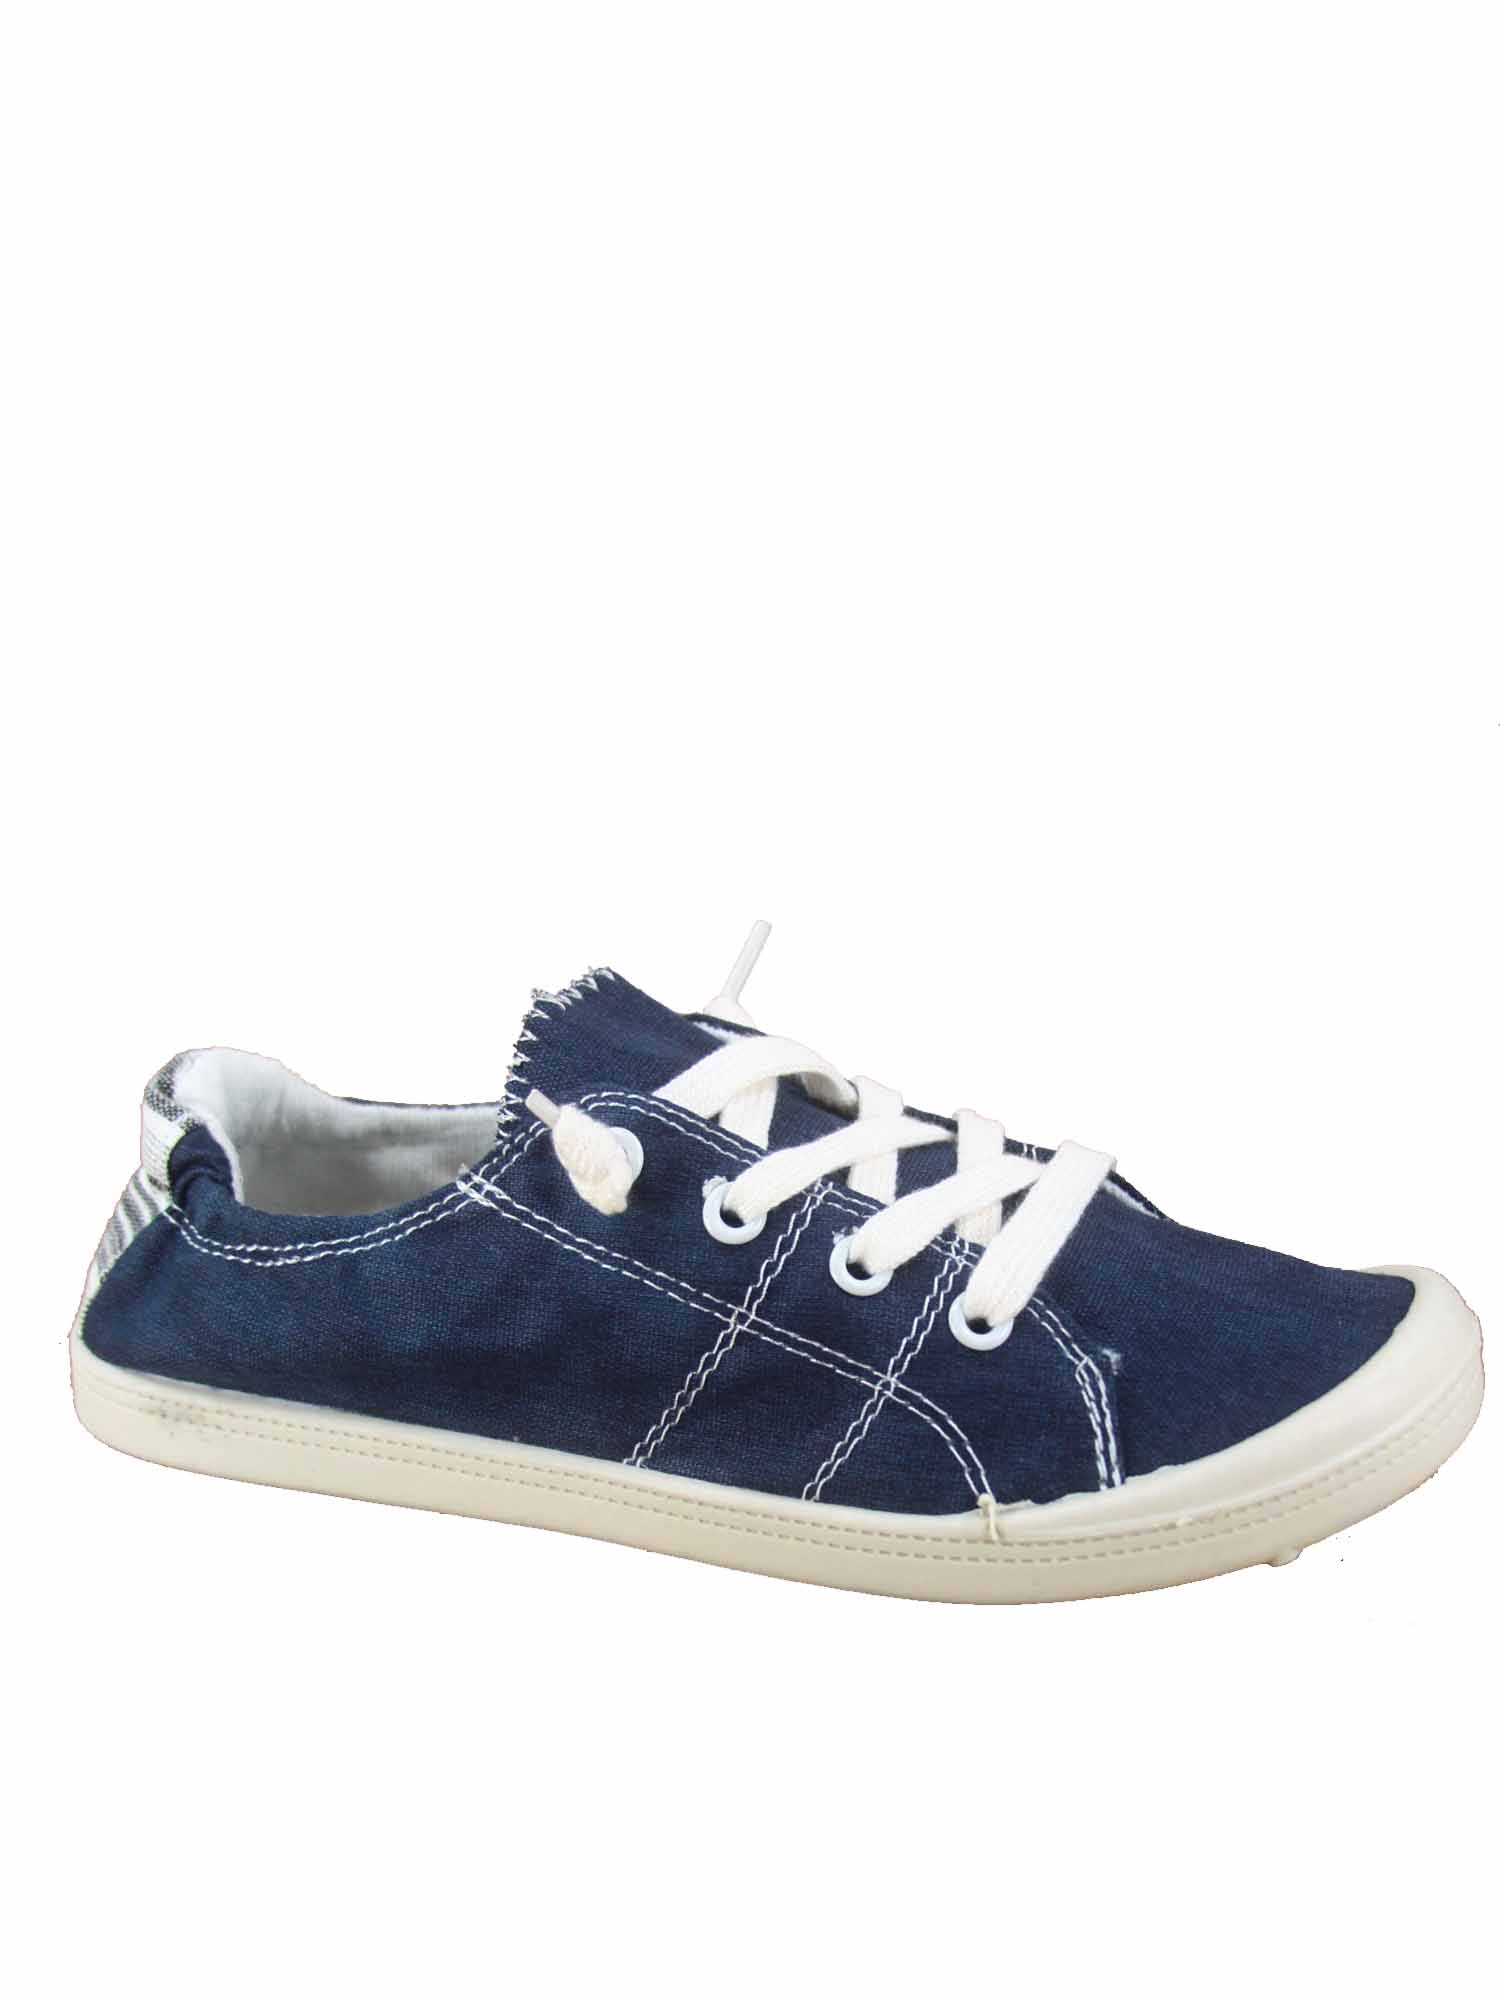 Round Toe Flat Sneaker Shoes